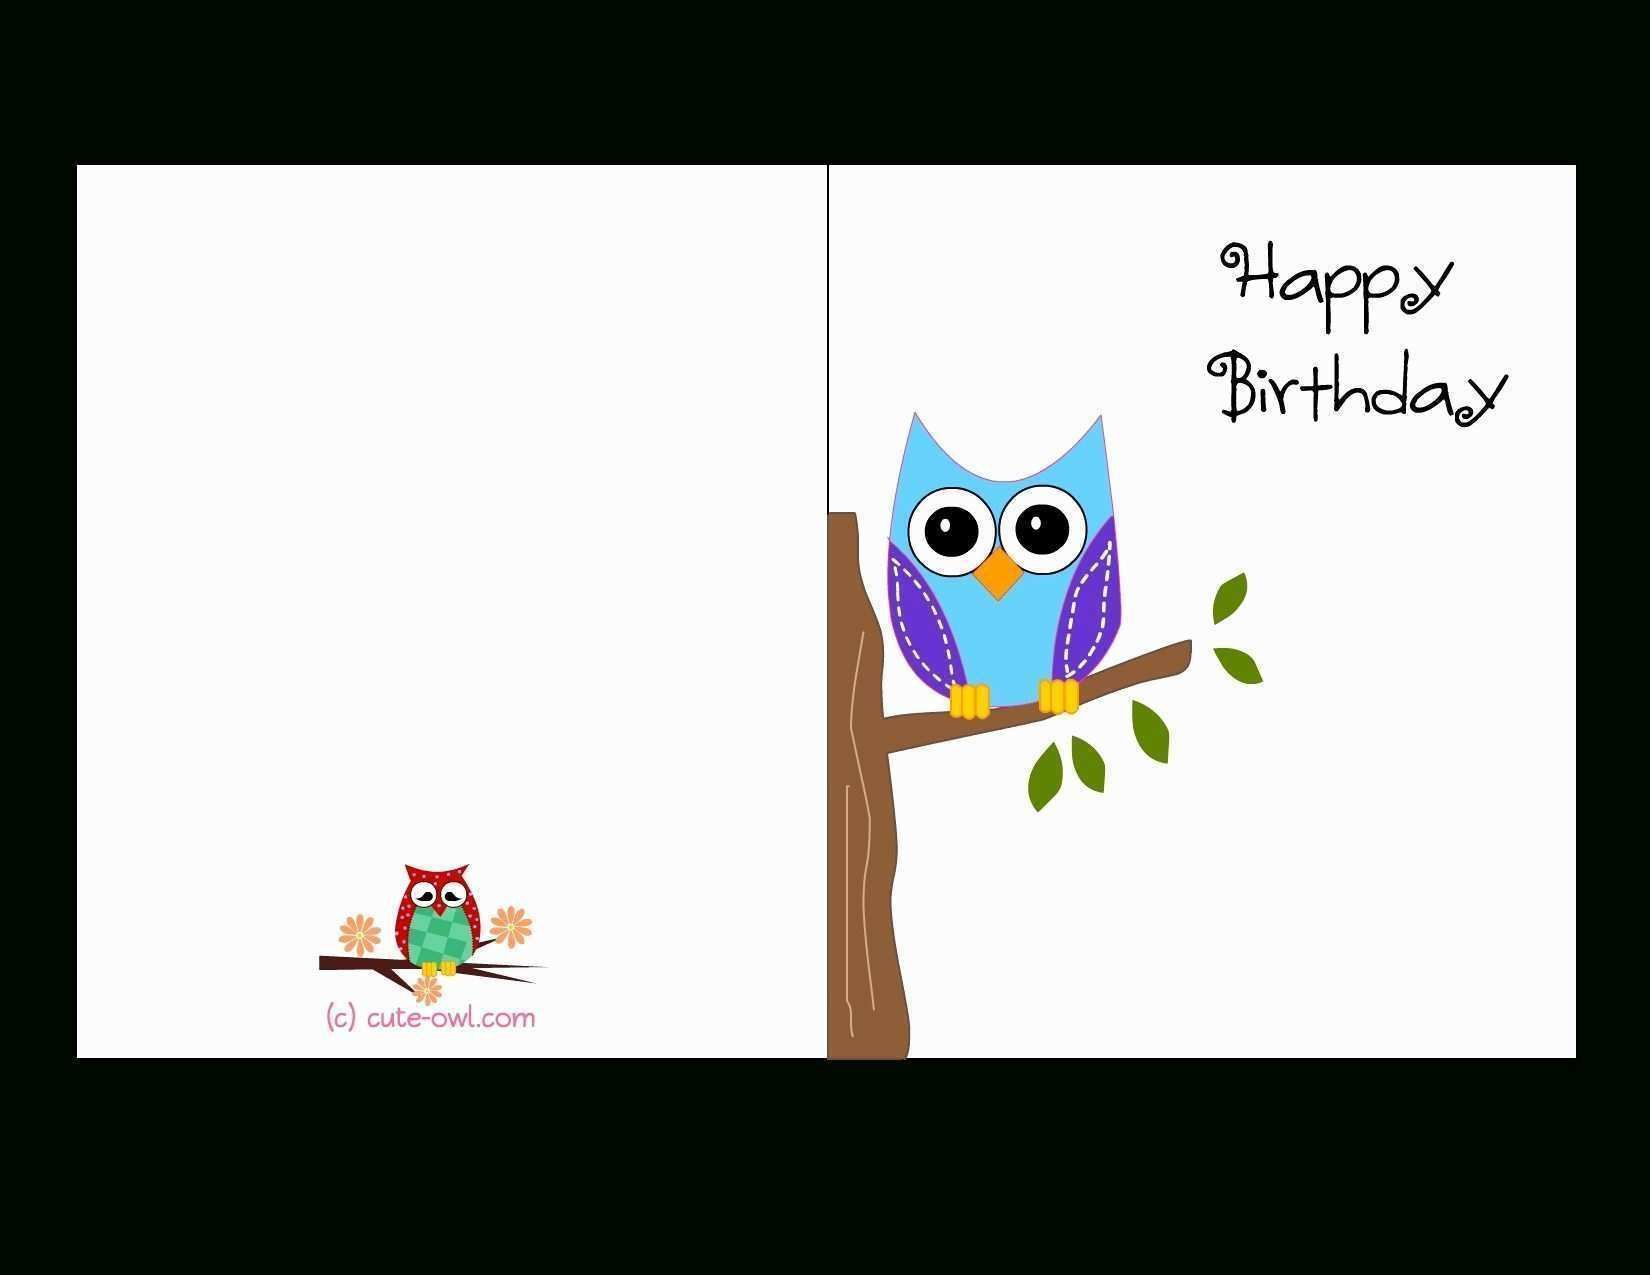 005 Incredible Blank Birthday Card Template For Word Picture  FreeFull